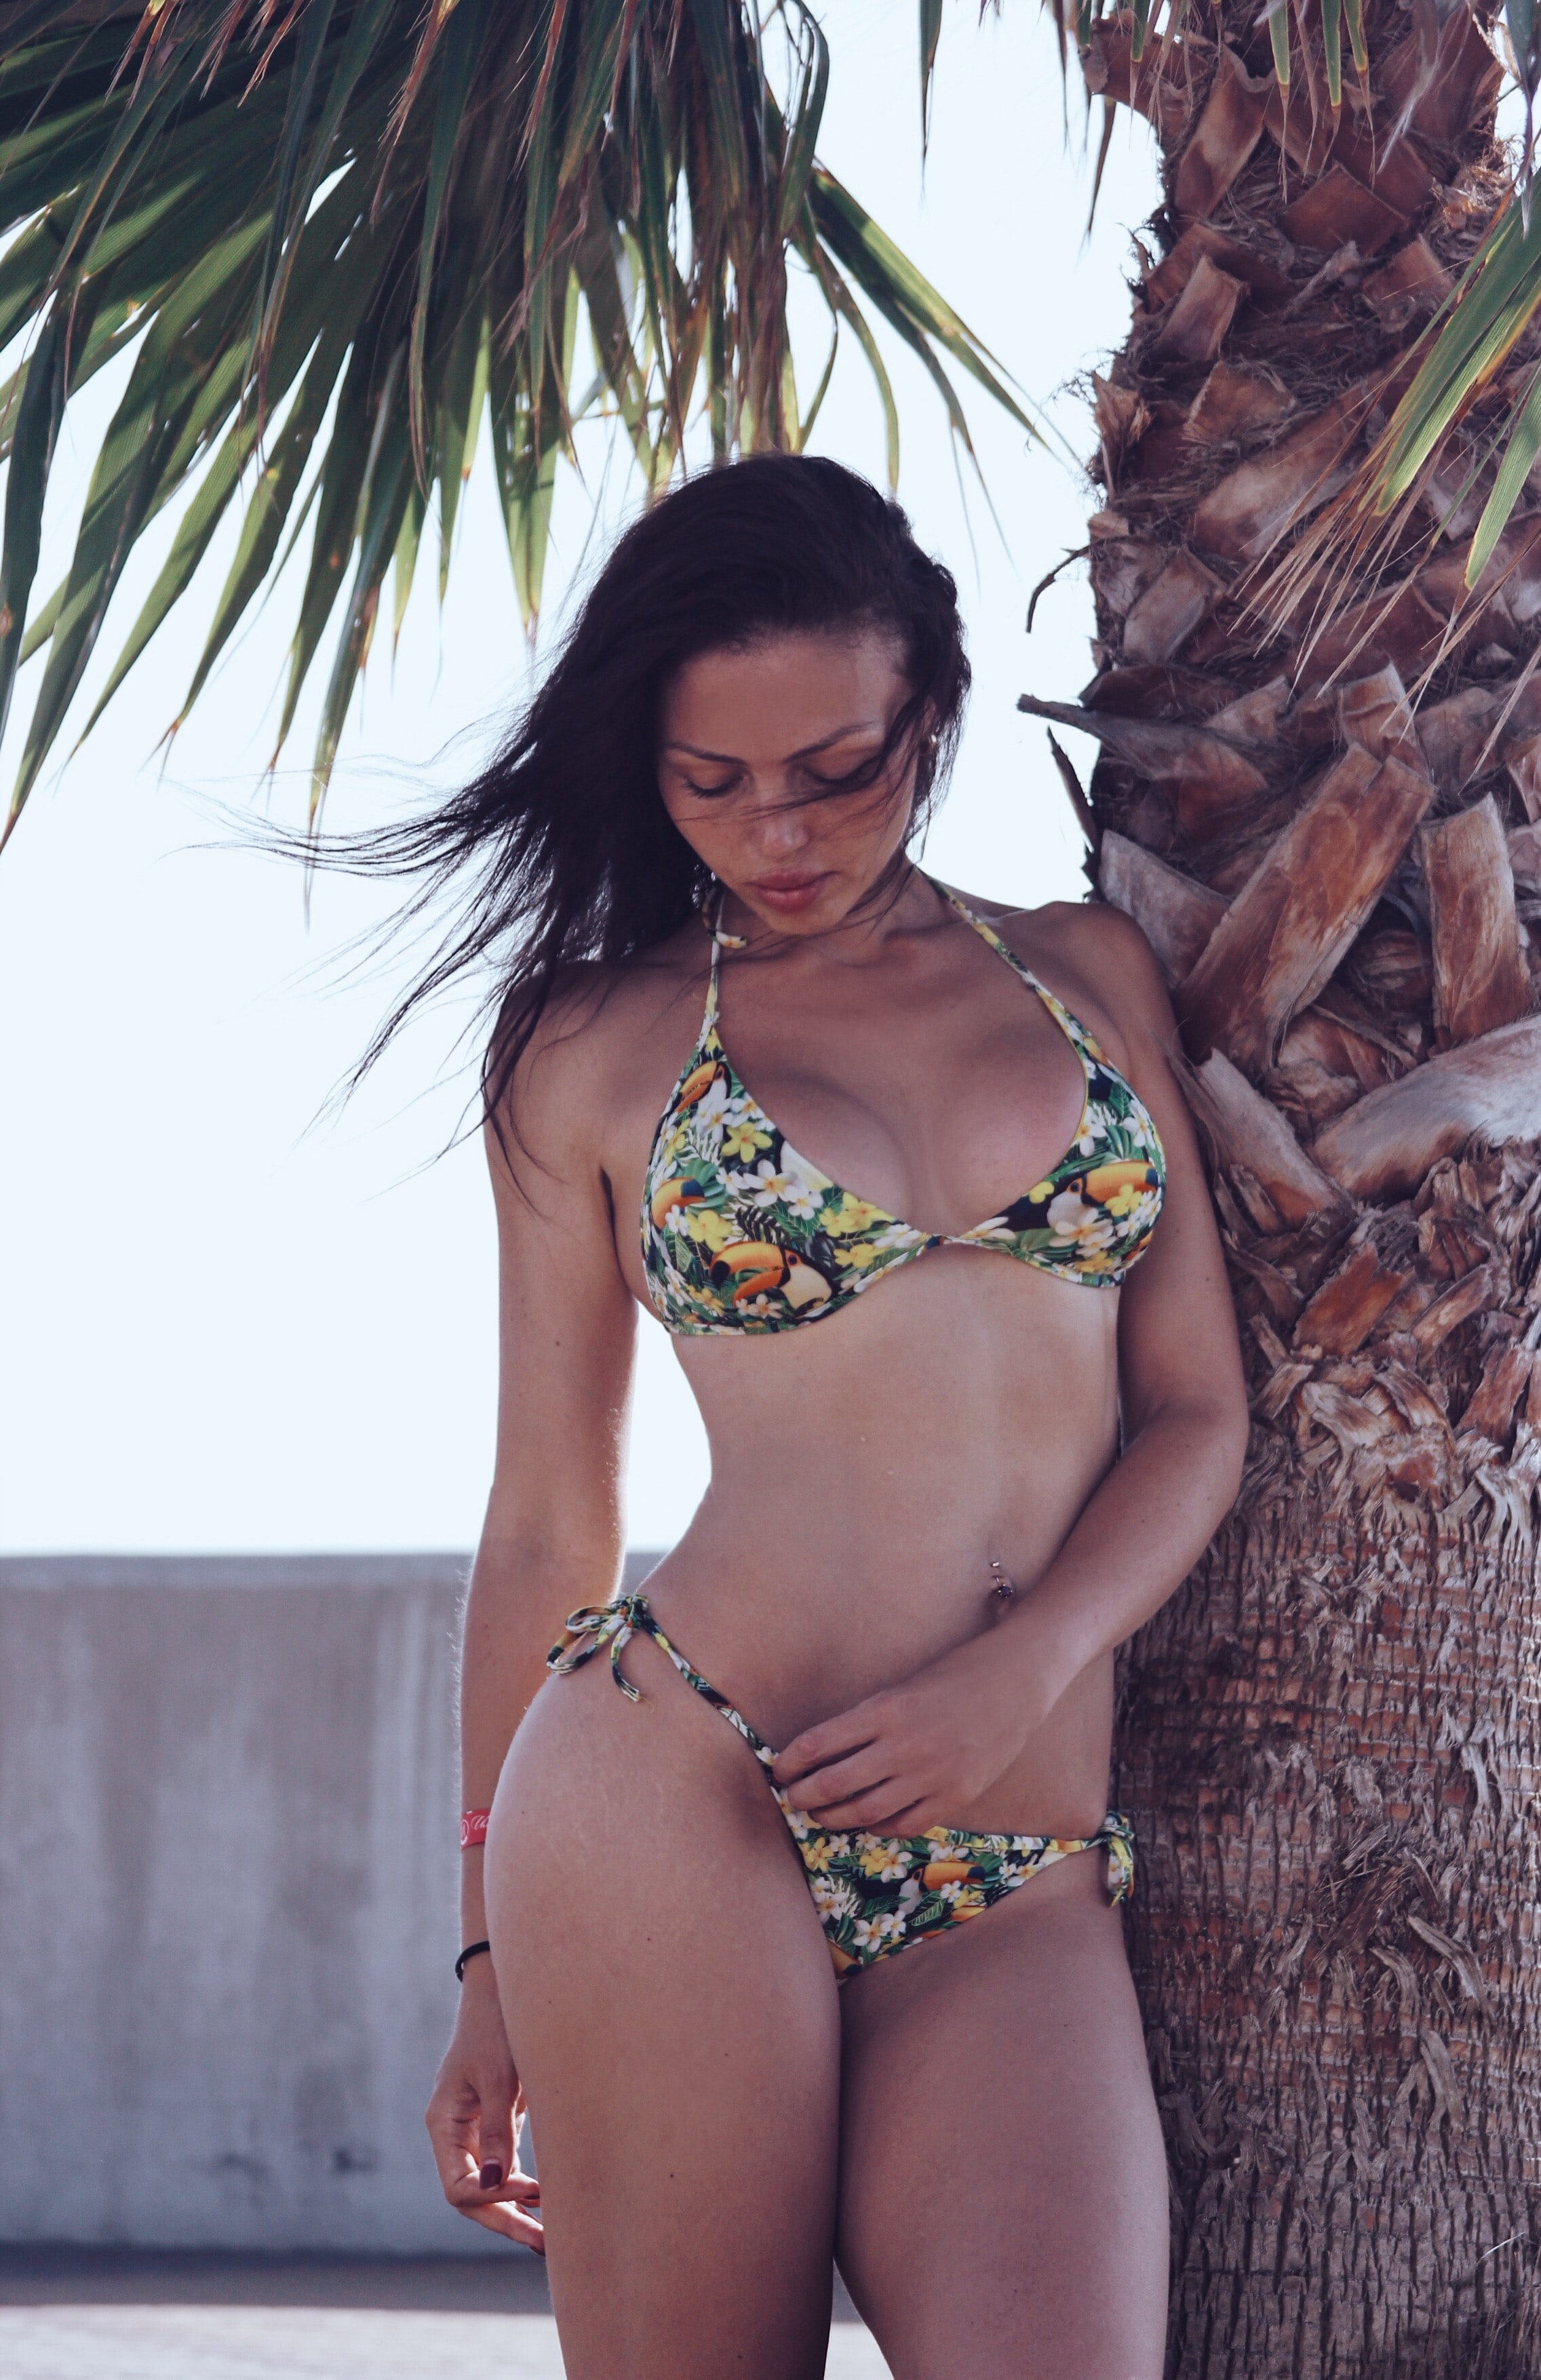 woman wearing floral bikini set standing beside palm tree at daytime